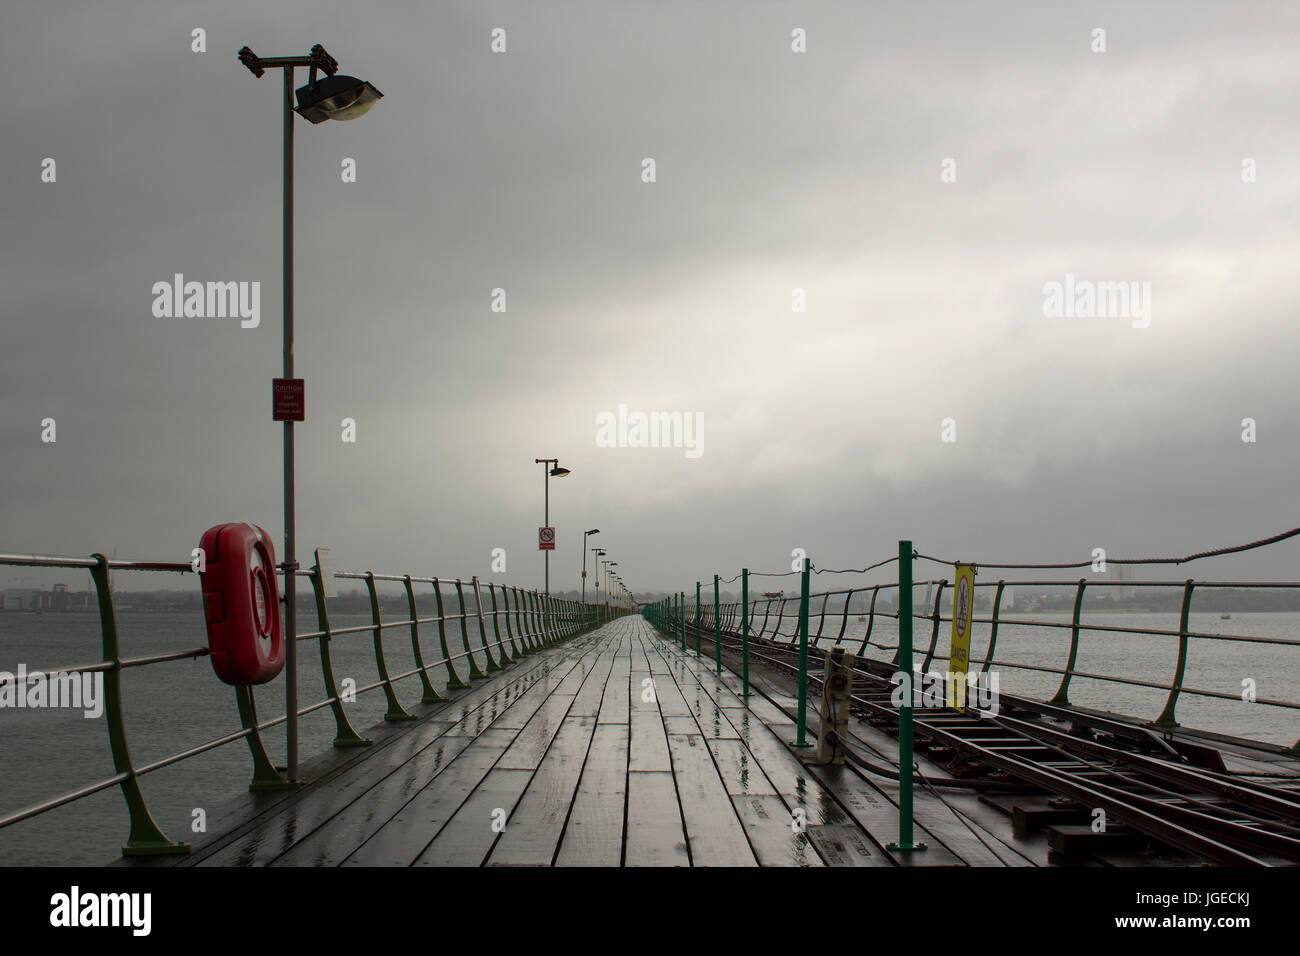 The long pier at Hythe in the south of England with its wooden walkway and railway line to the Southampton Ferry - Stock Image